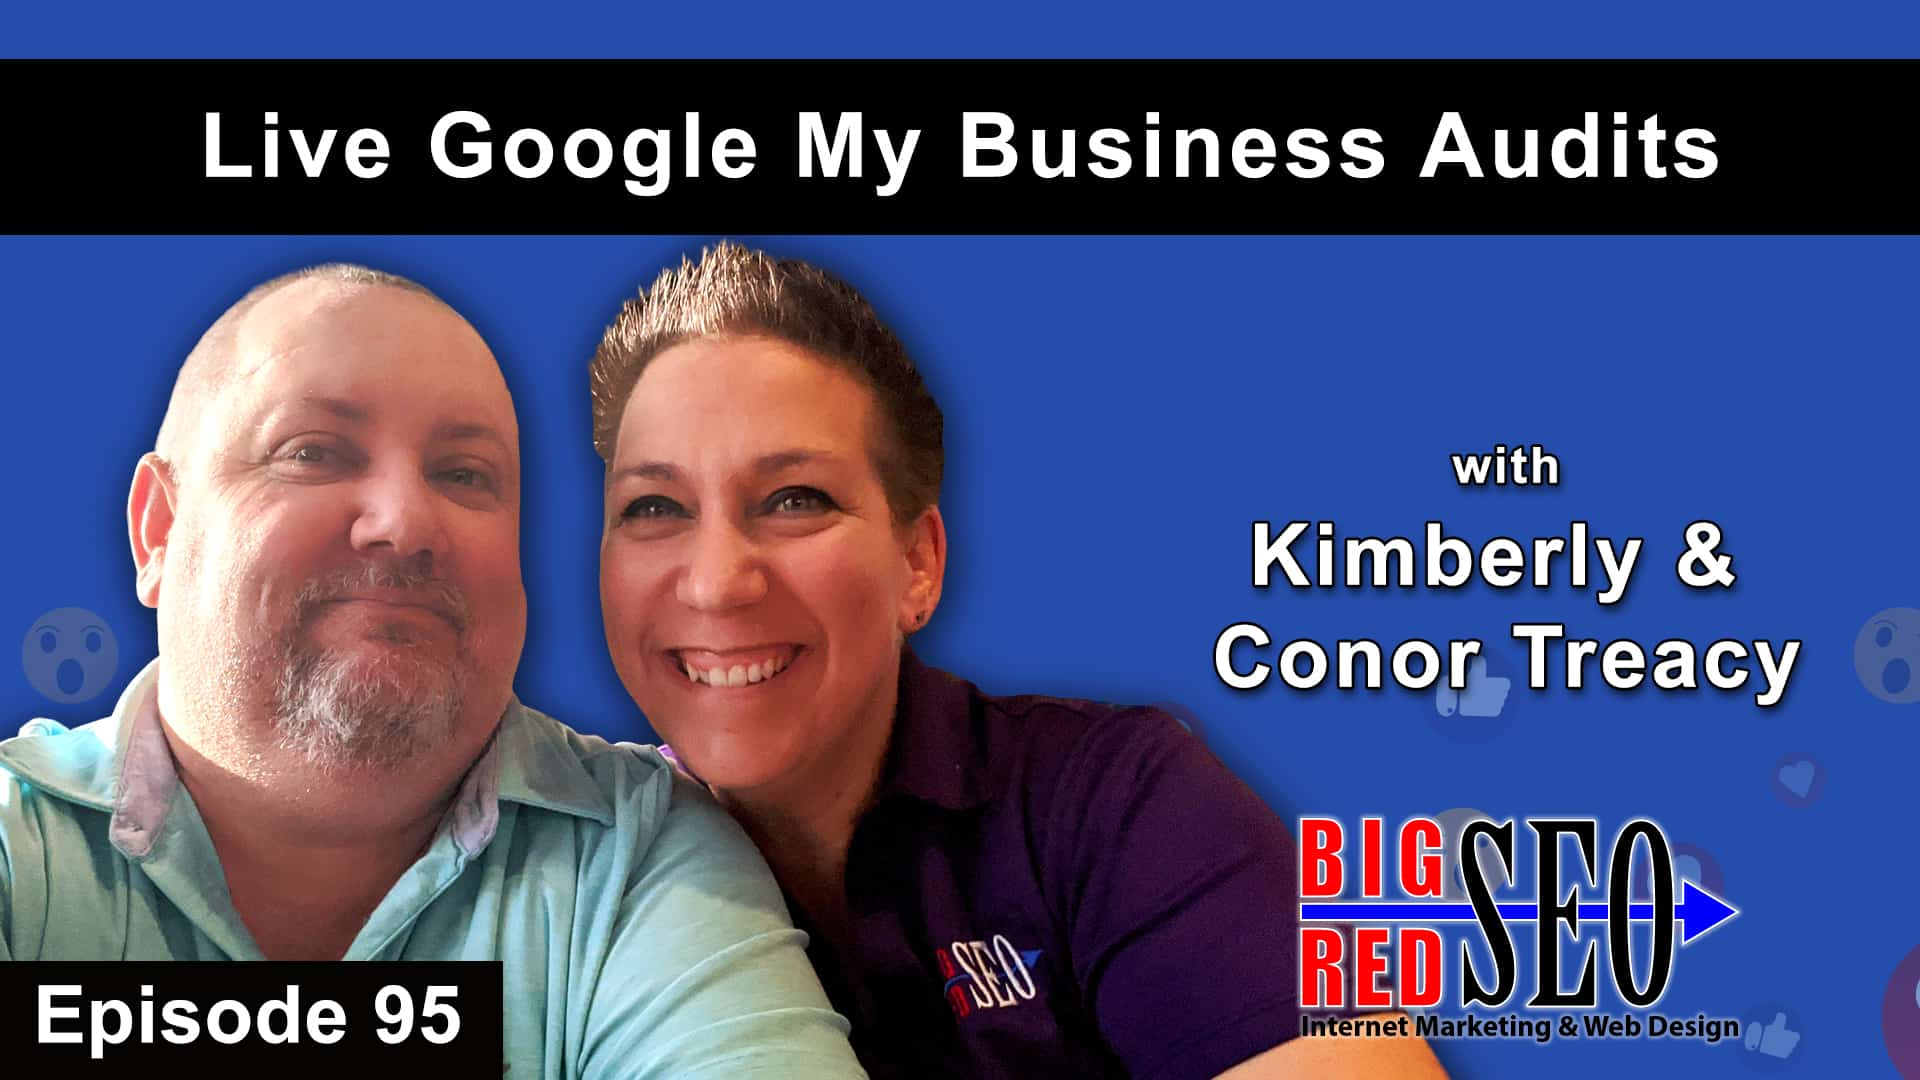 Google My Business Audit - Episode 95